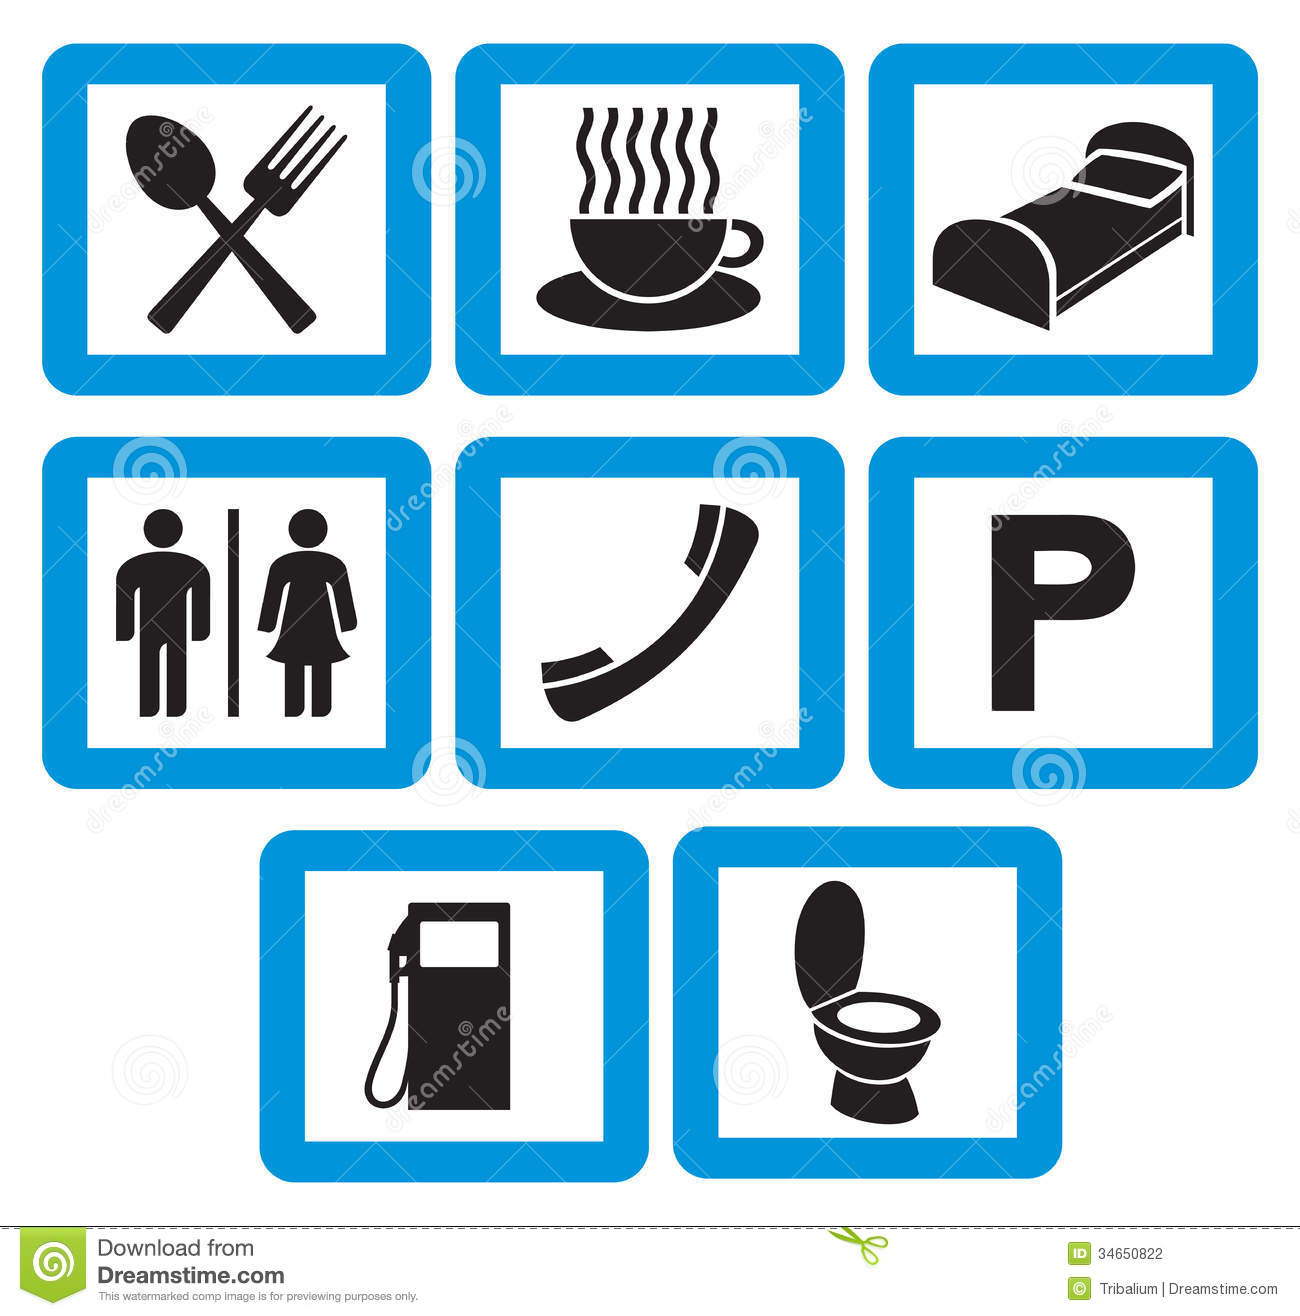 ... sign, toilet symbol, coffee cup icon, parking sign, restaurant sign